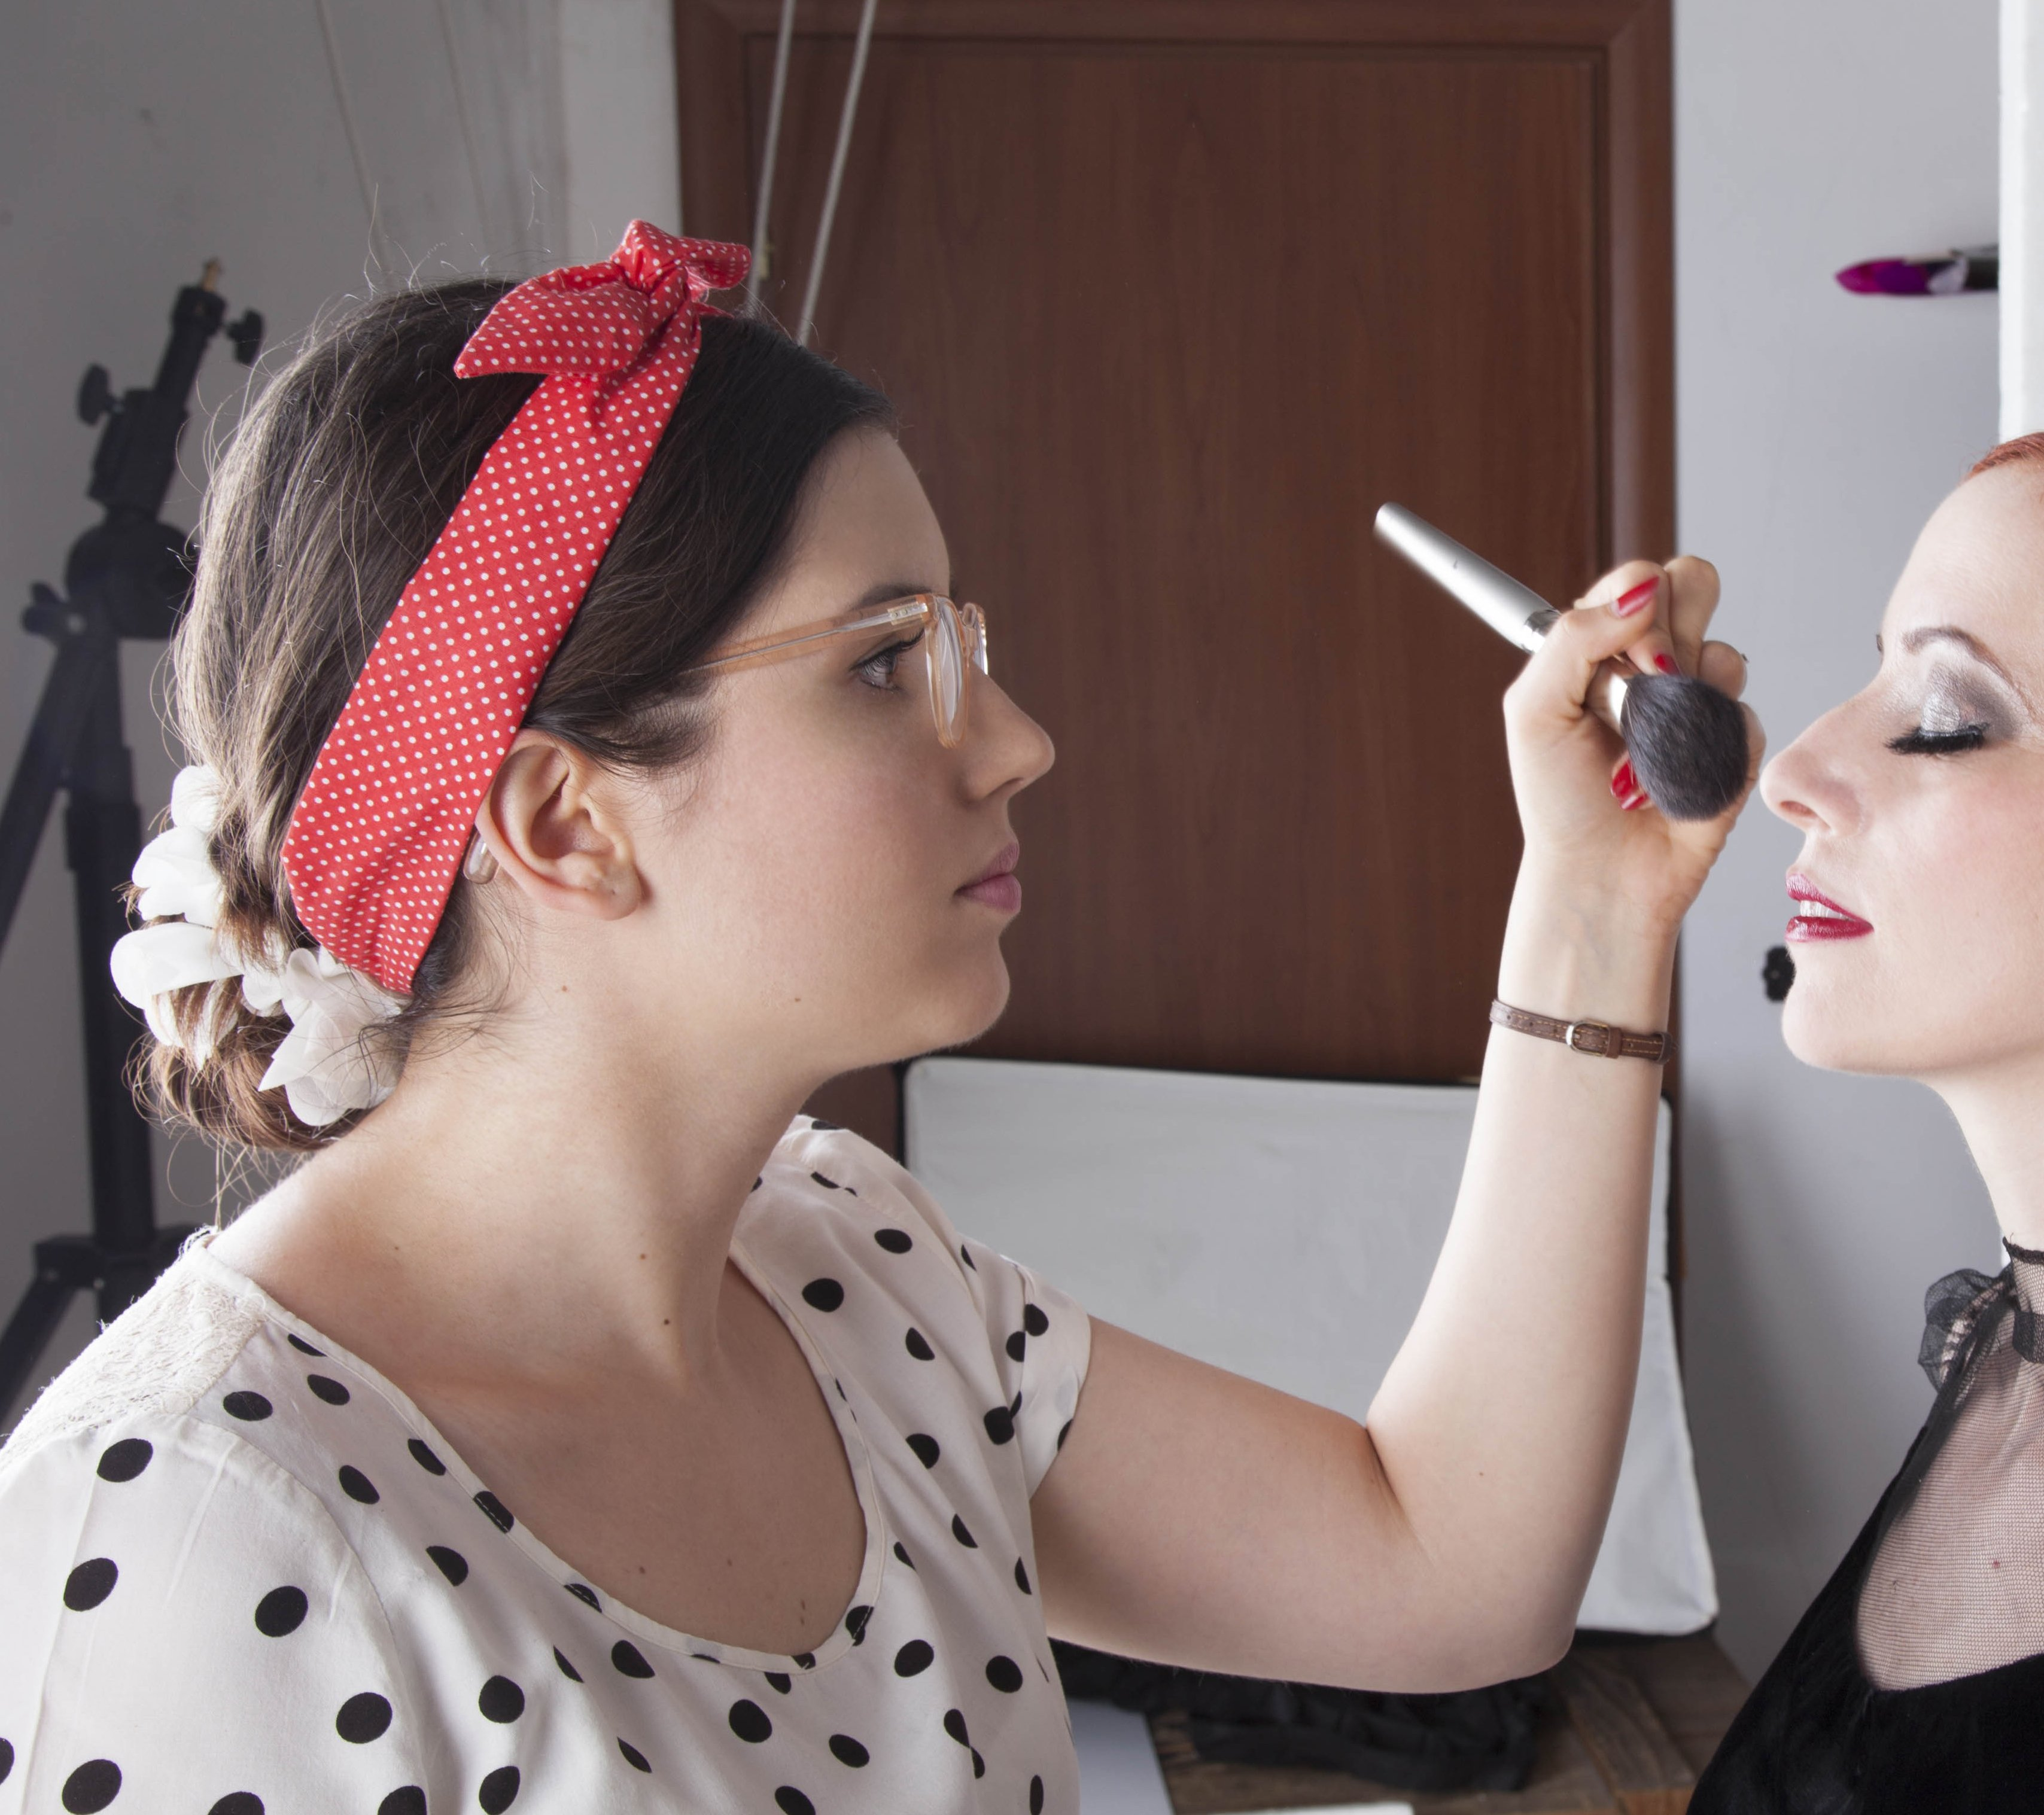 Il lavoro di Make-up Artist: intervistiamo Francesca Brugioni di Retrorama